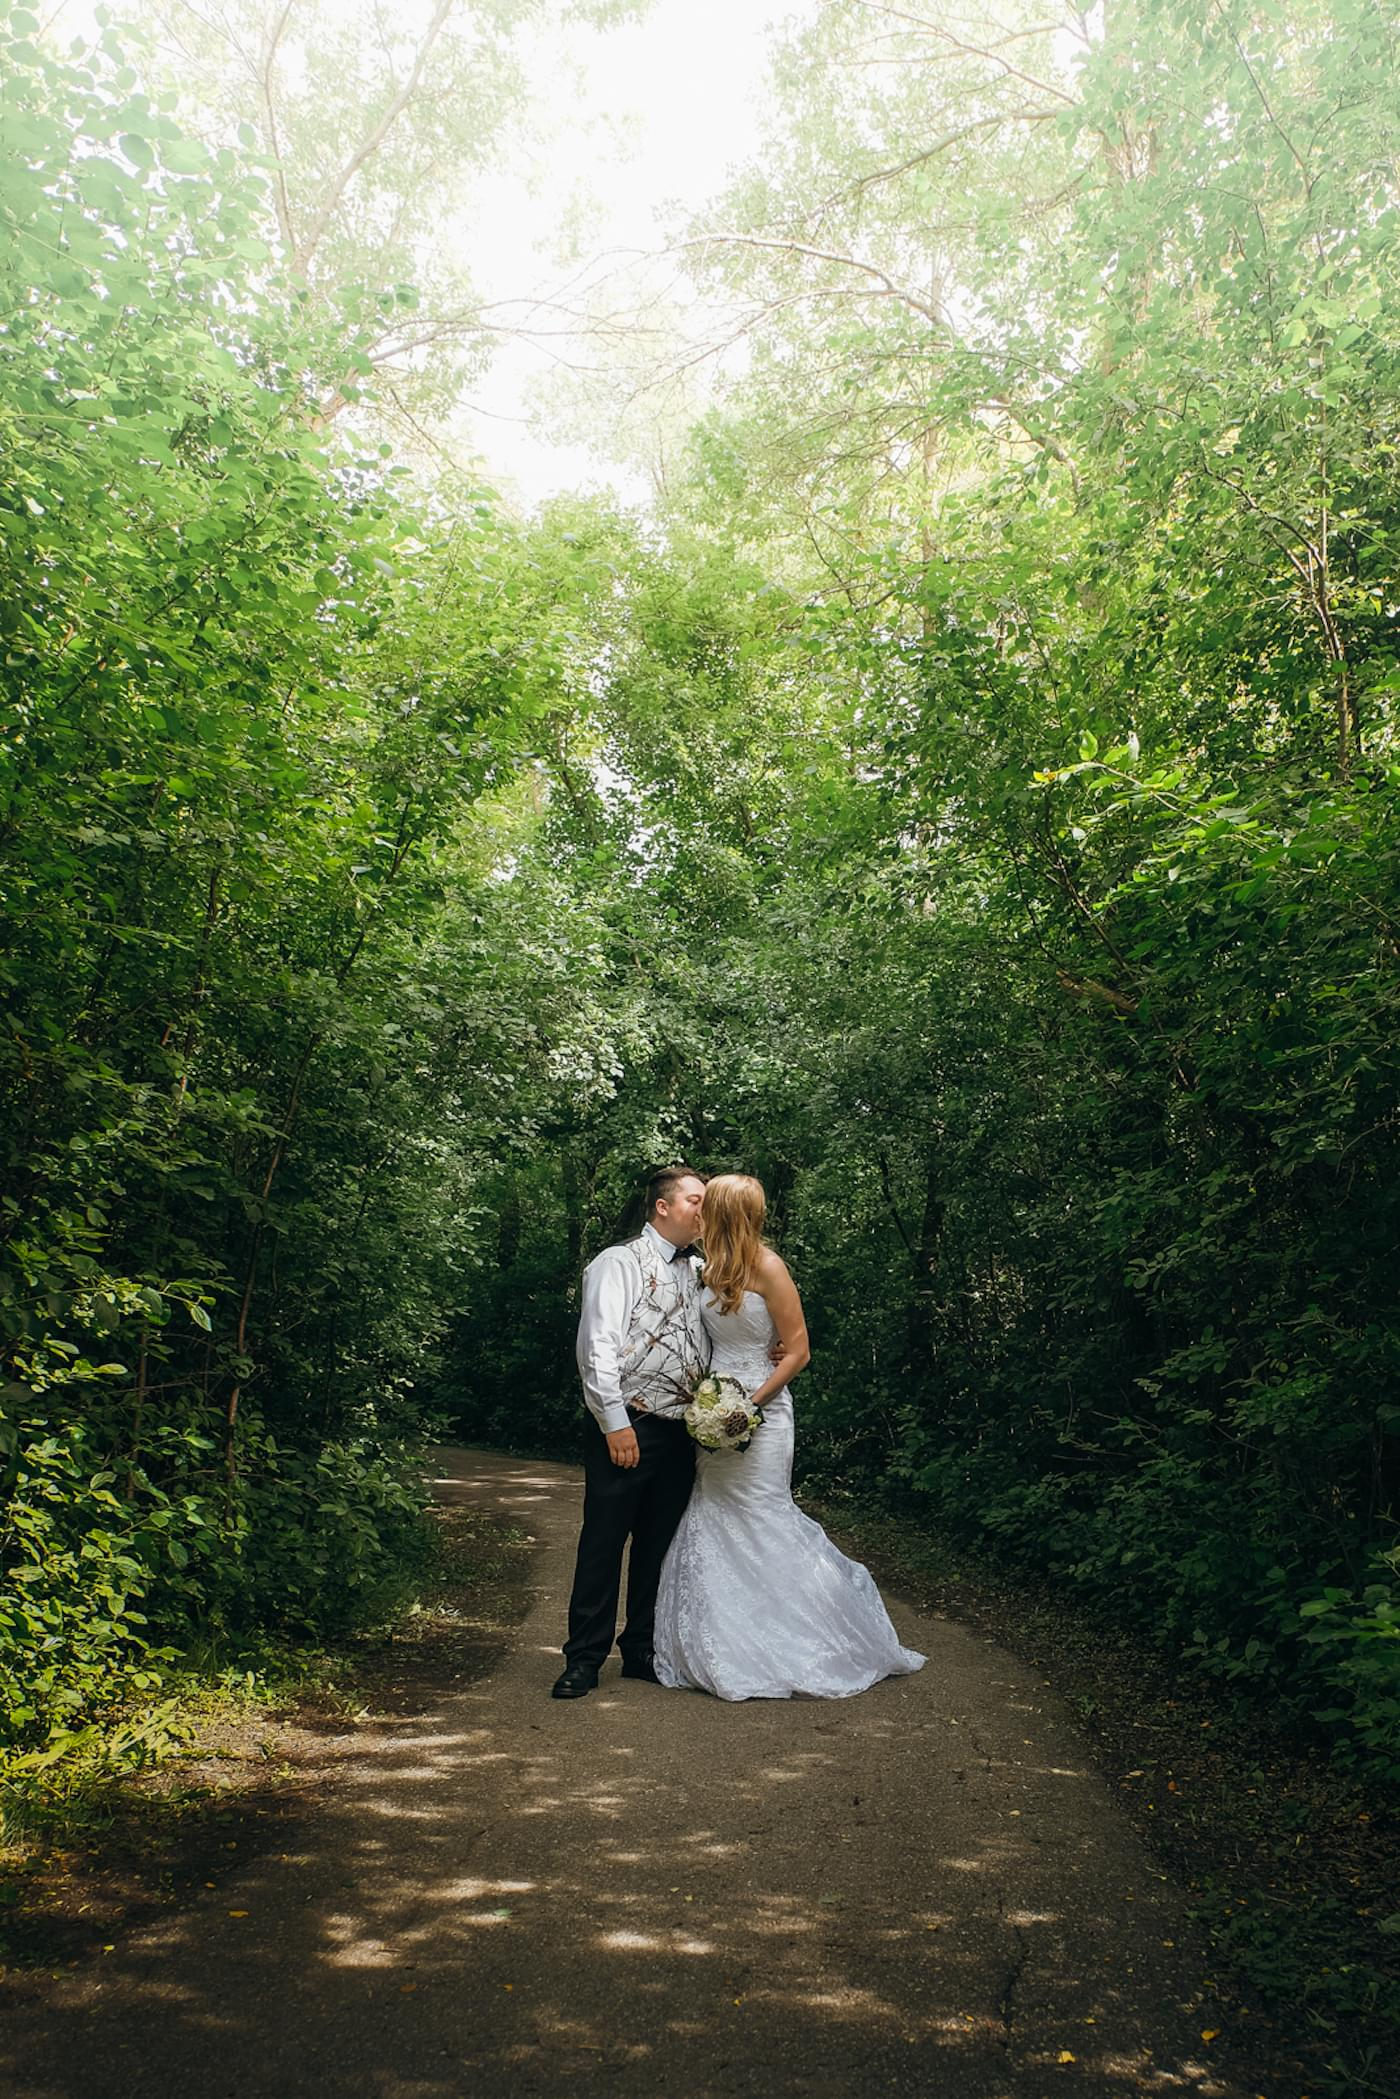 Wedding and engagement photos by Toronto based photographer Darrin Henein.